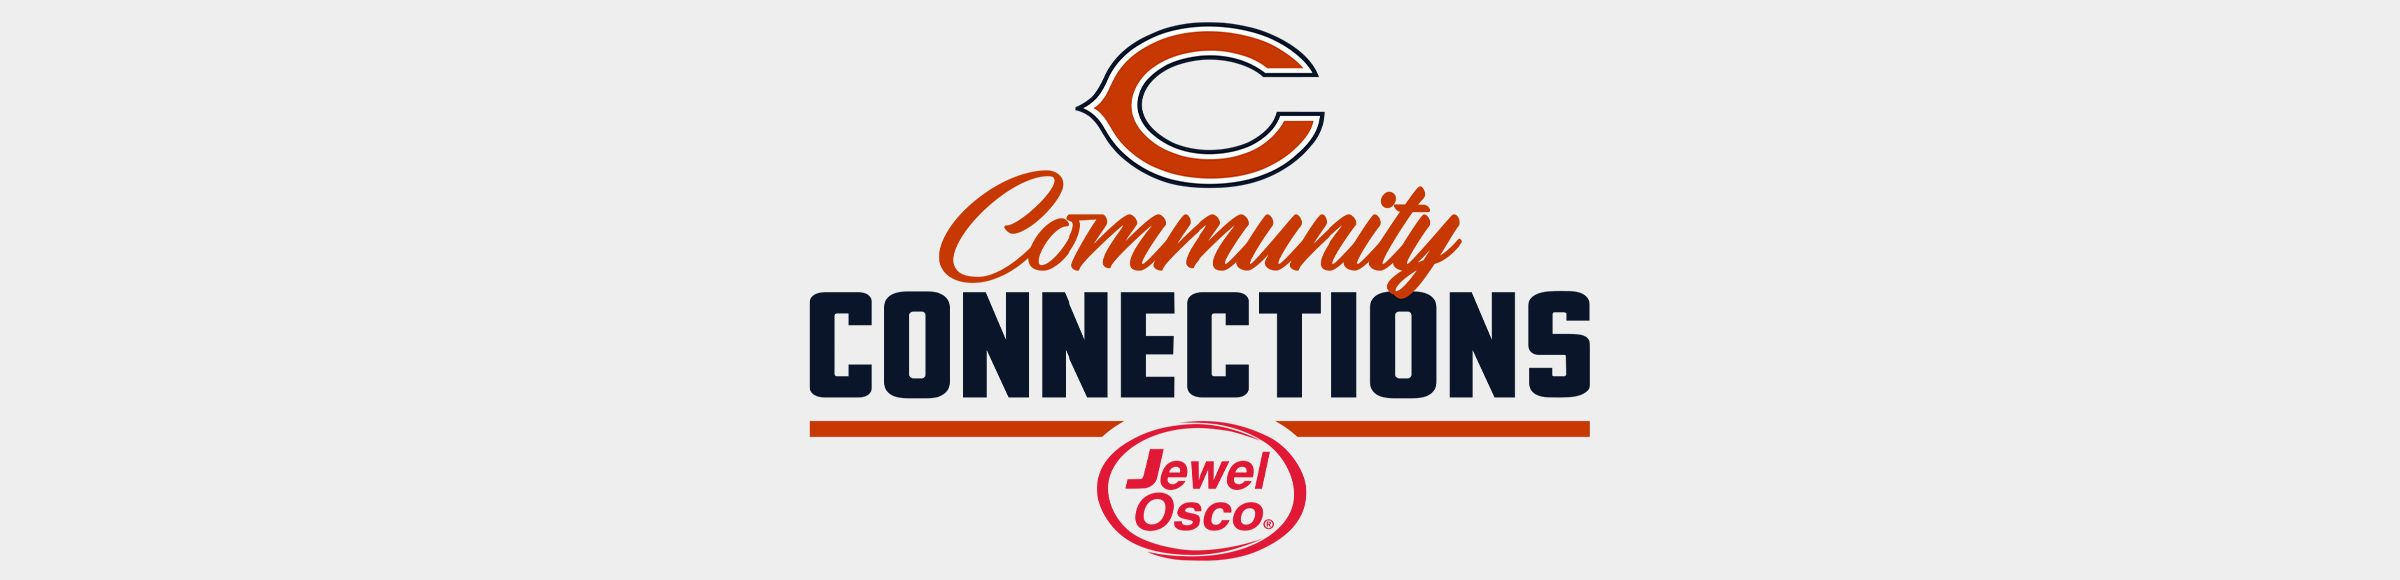 community-connections-header-081420